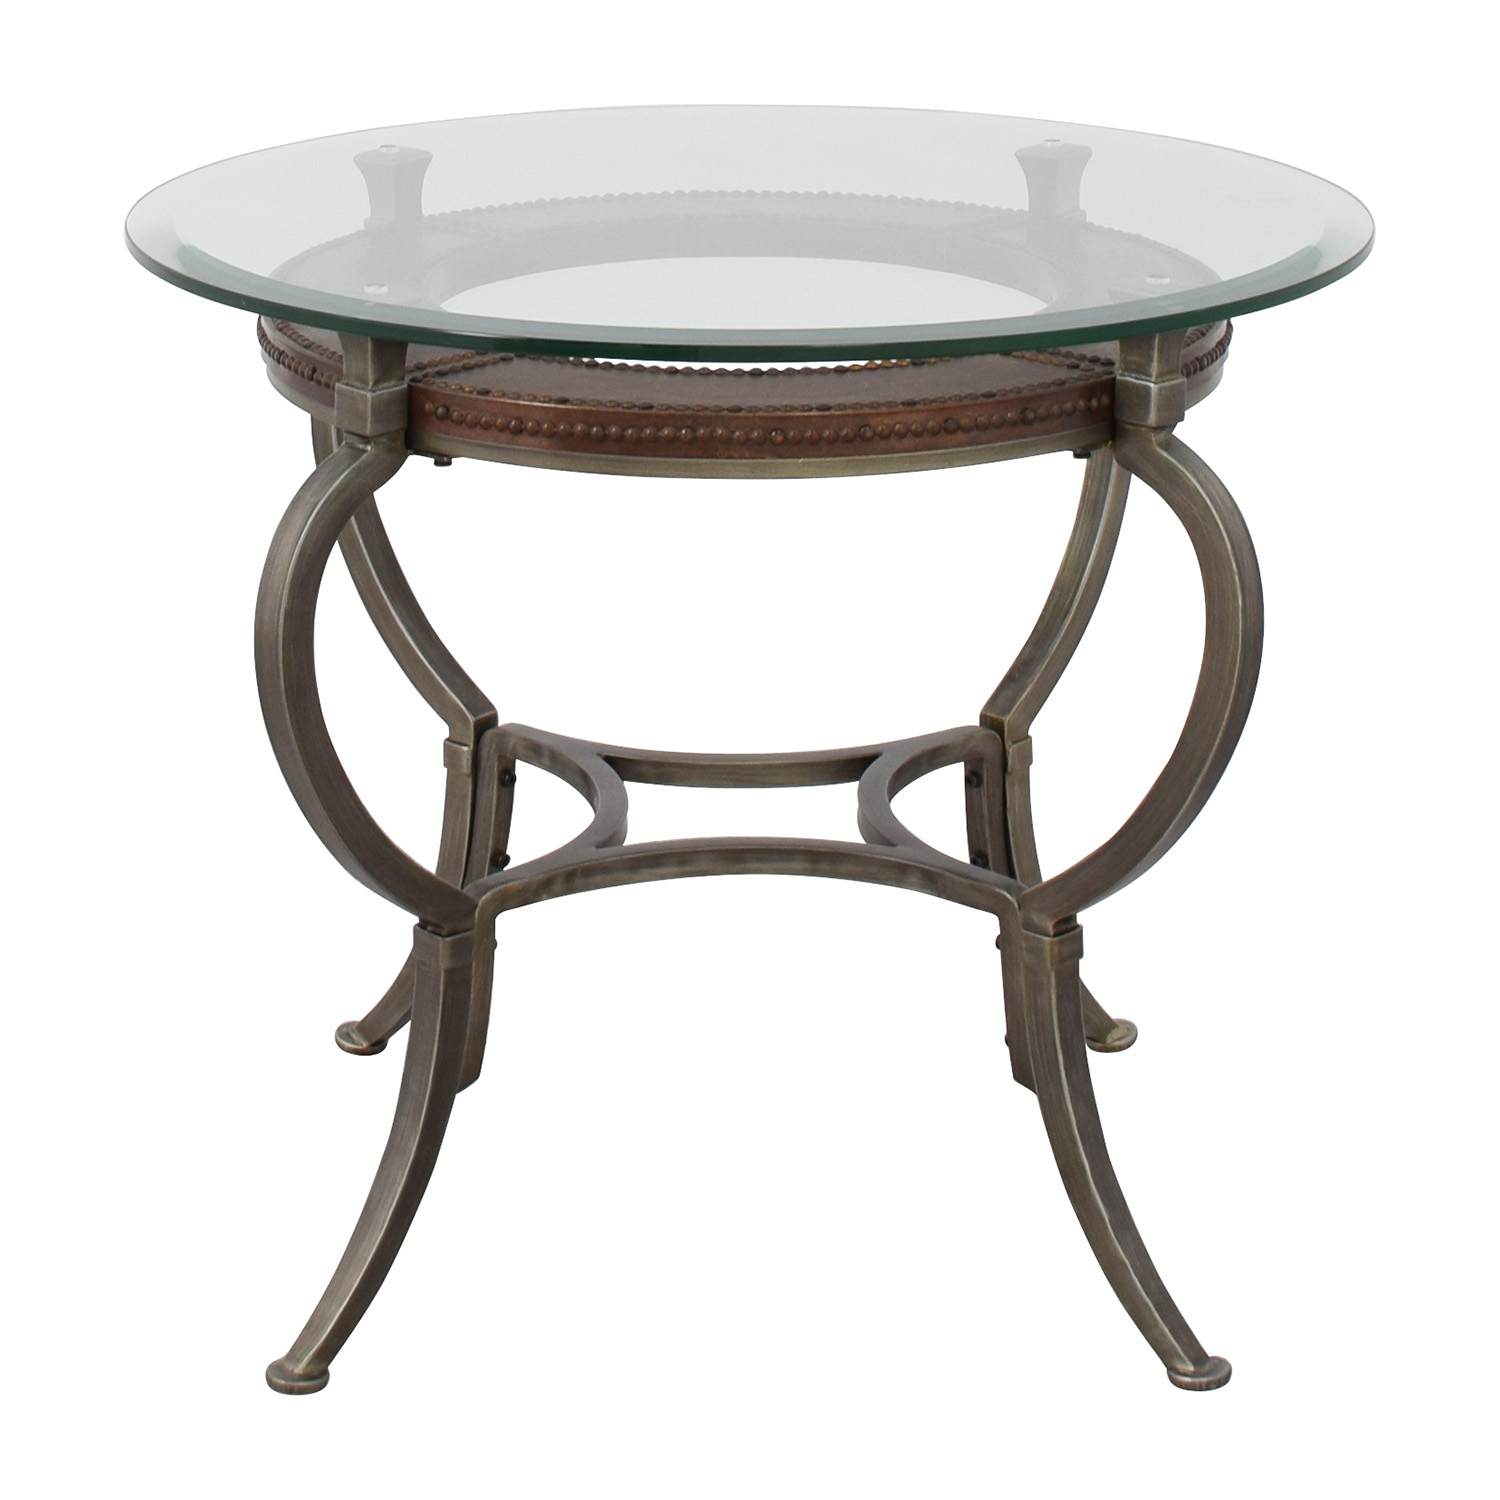 Macys Macys Artistica Round Glass And Metal End Table Nyc ...